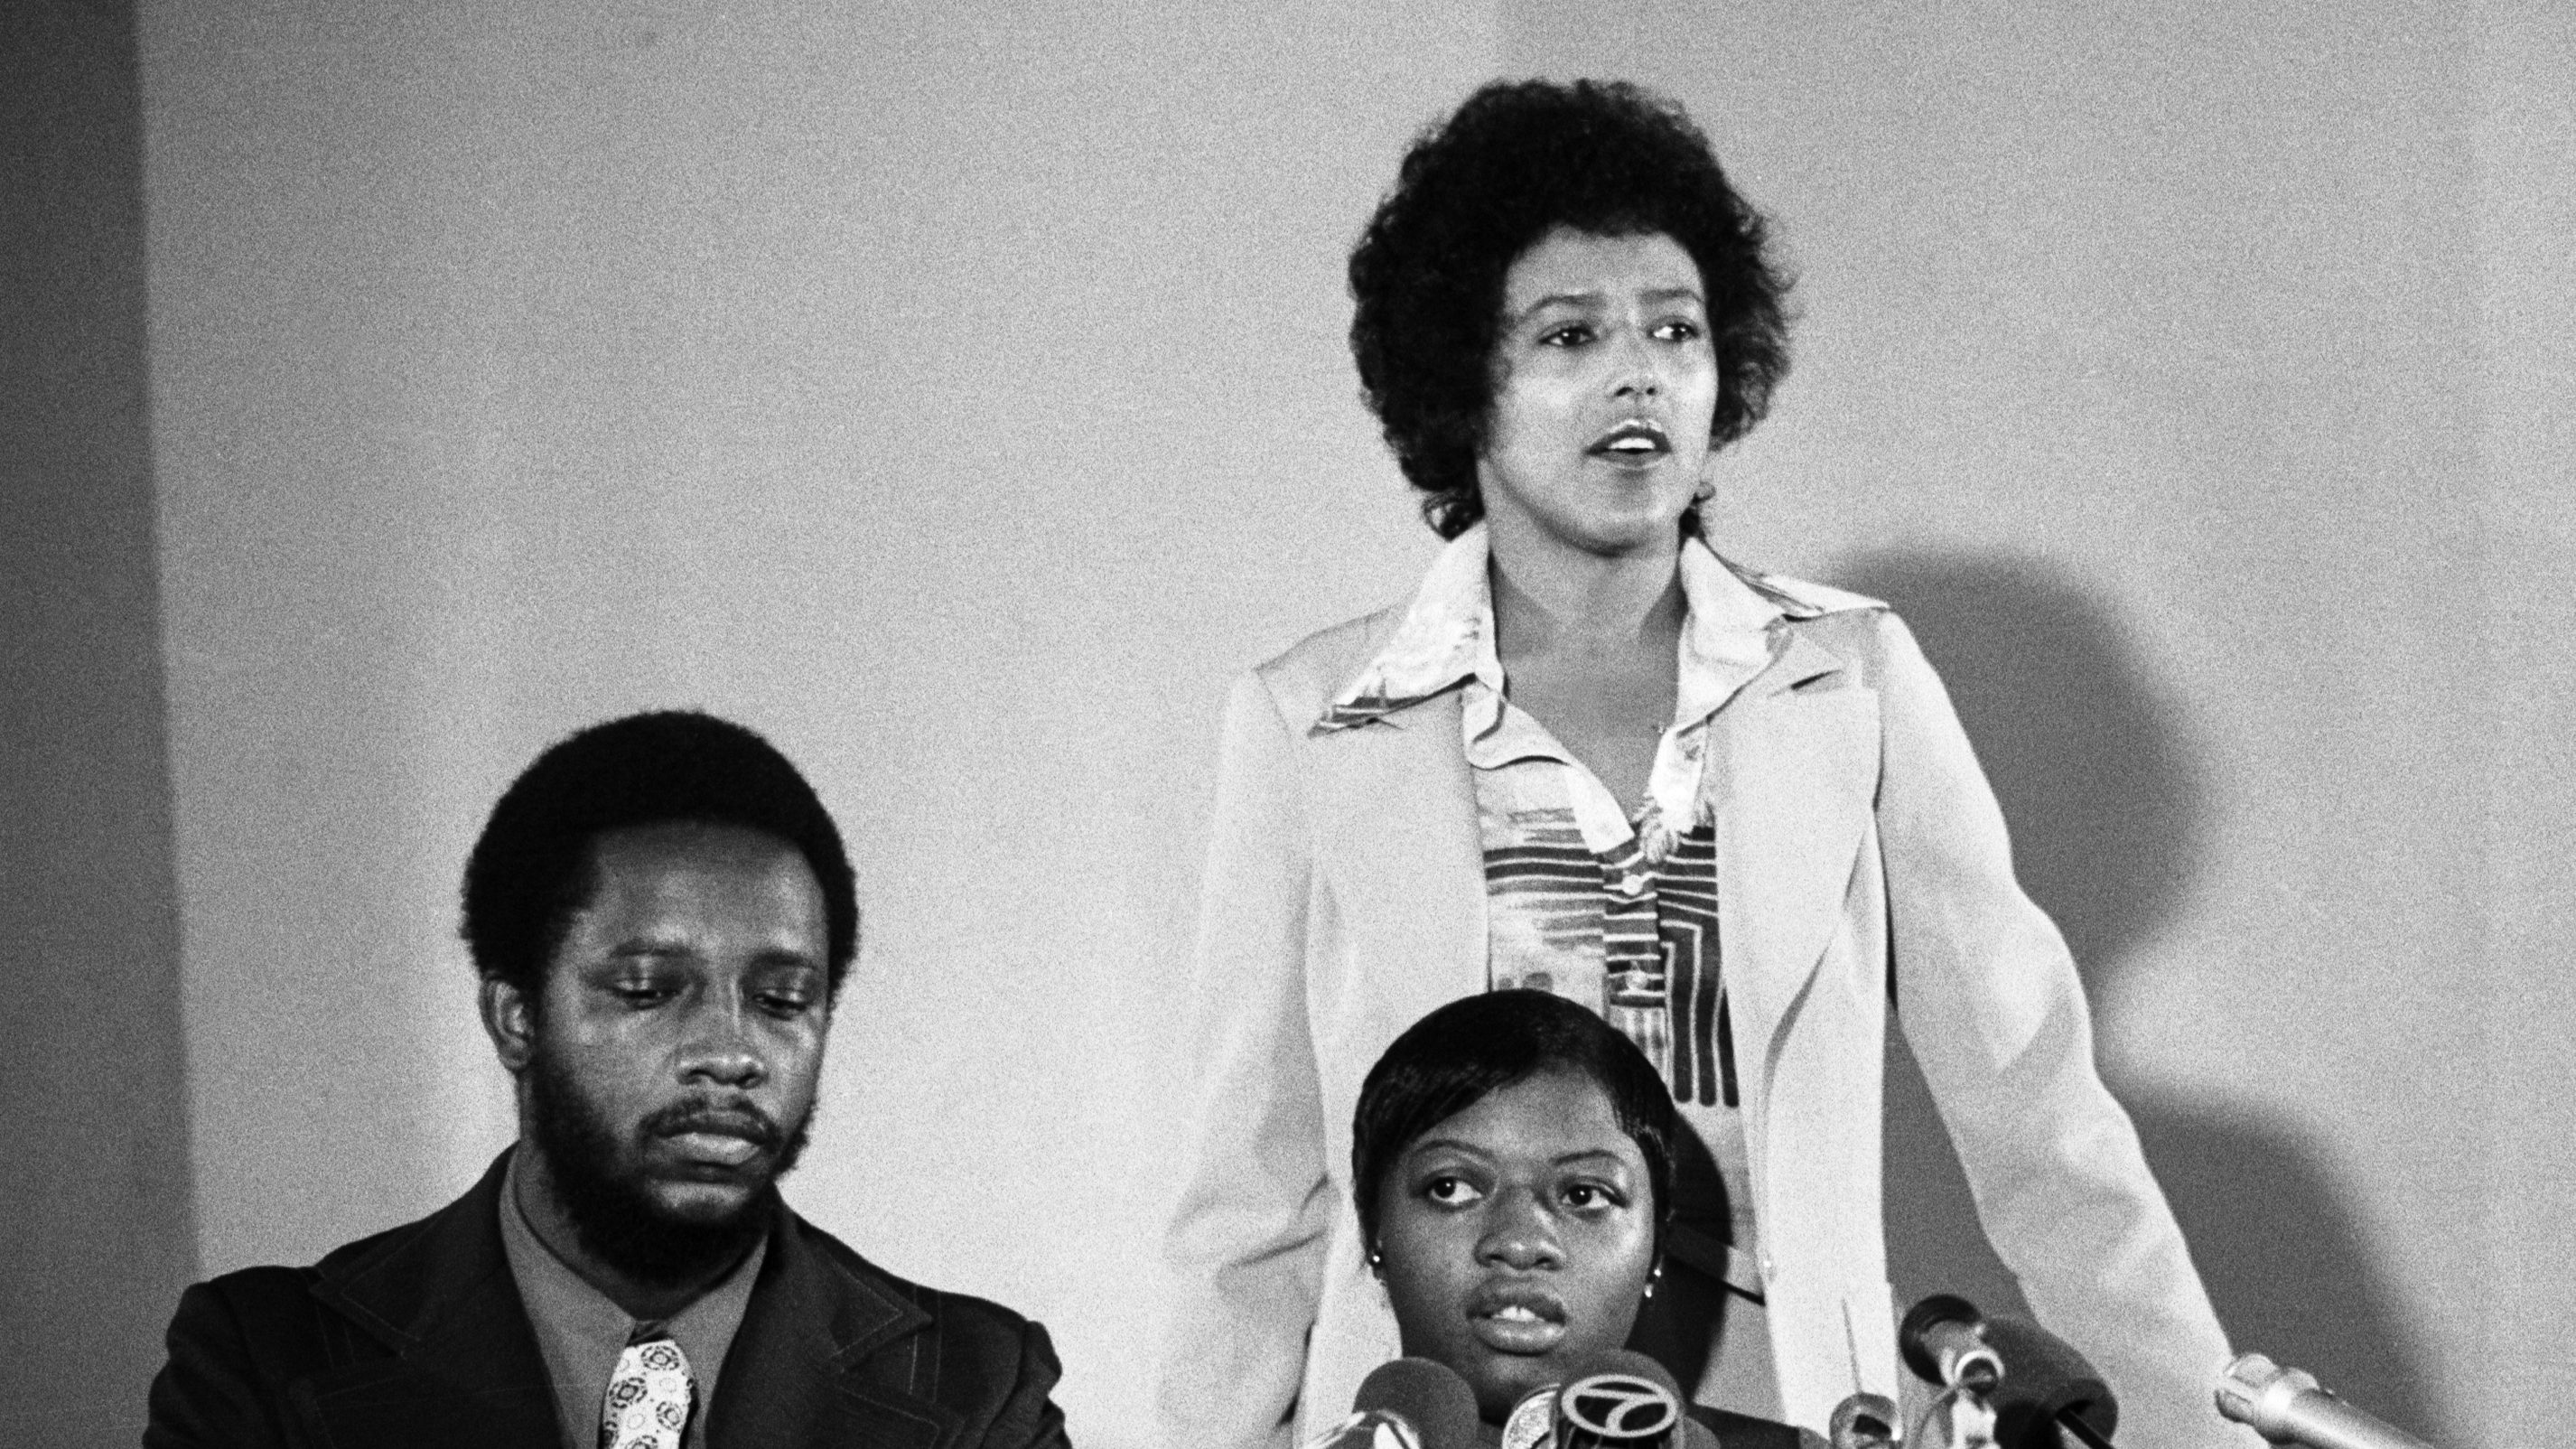 Elaine Brown, chairwoman of the Black Panther Party (back), introduces Joanne Little, right, in Oakland, California, Aug. 22, 1975. Little had recently acquitted of the murder of her white jailer.